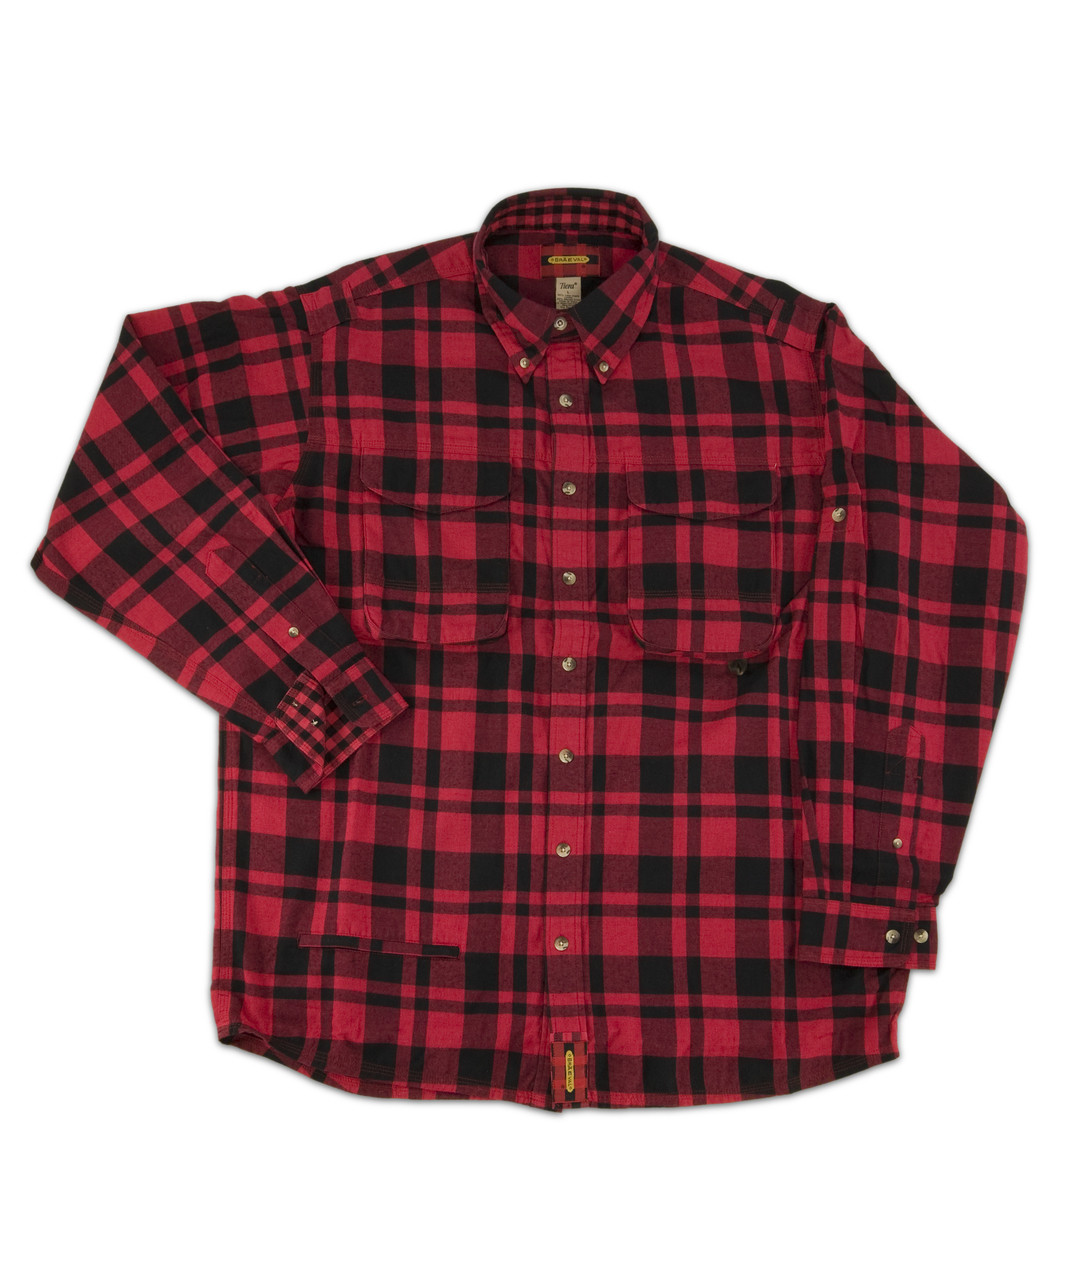 Exventurer - Rob Roy Highlander Plaid